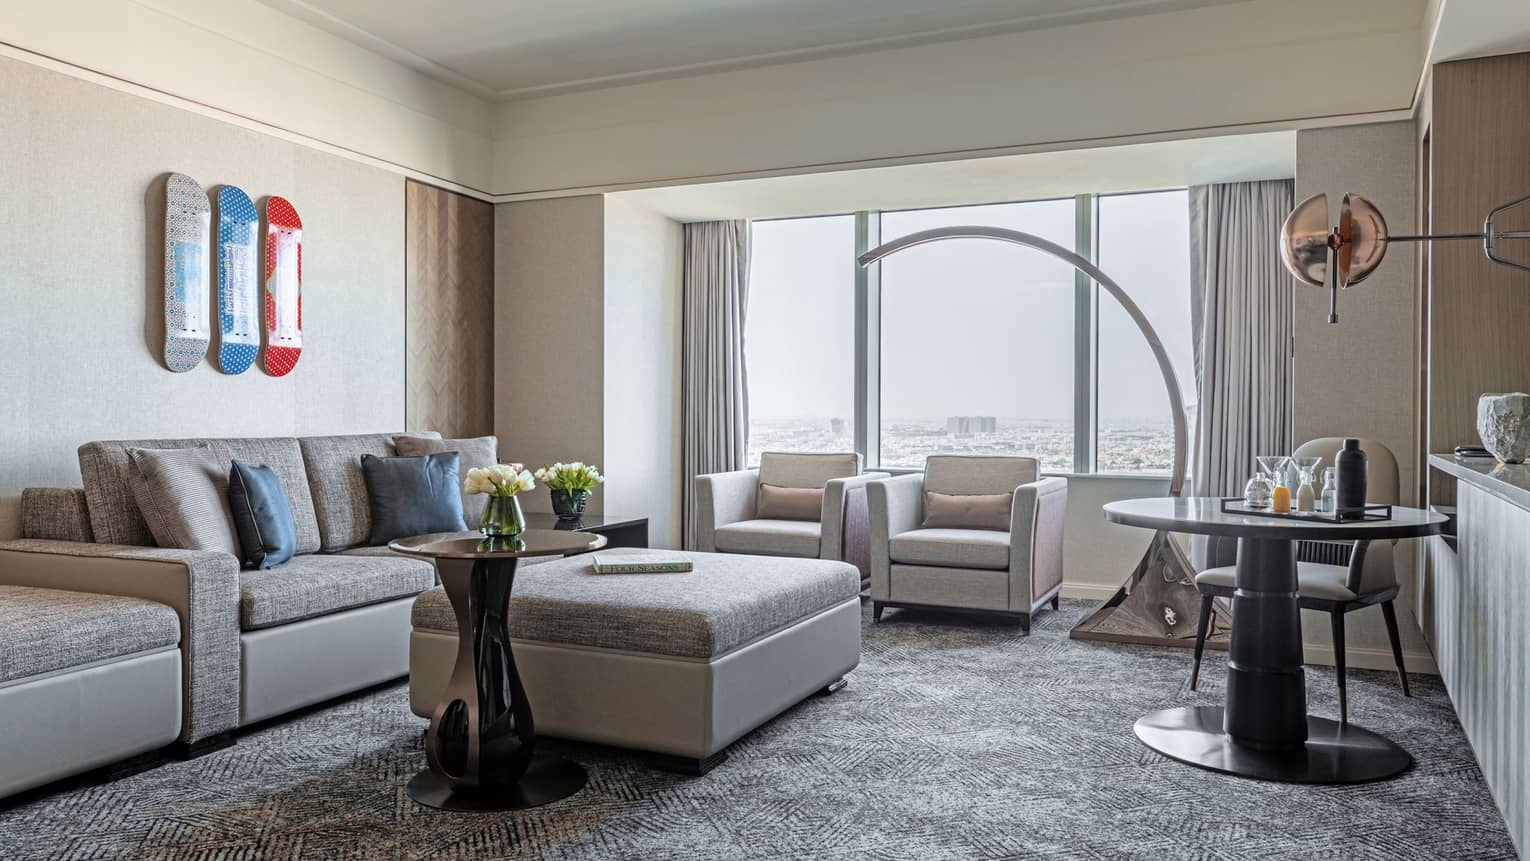 Living room with grey carpet, light grey sofa and ottoman, large curved floor lamp, windows